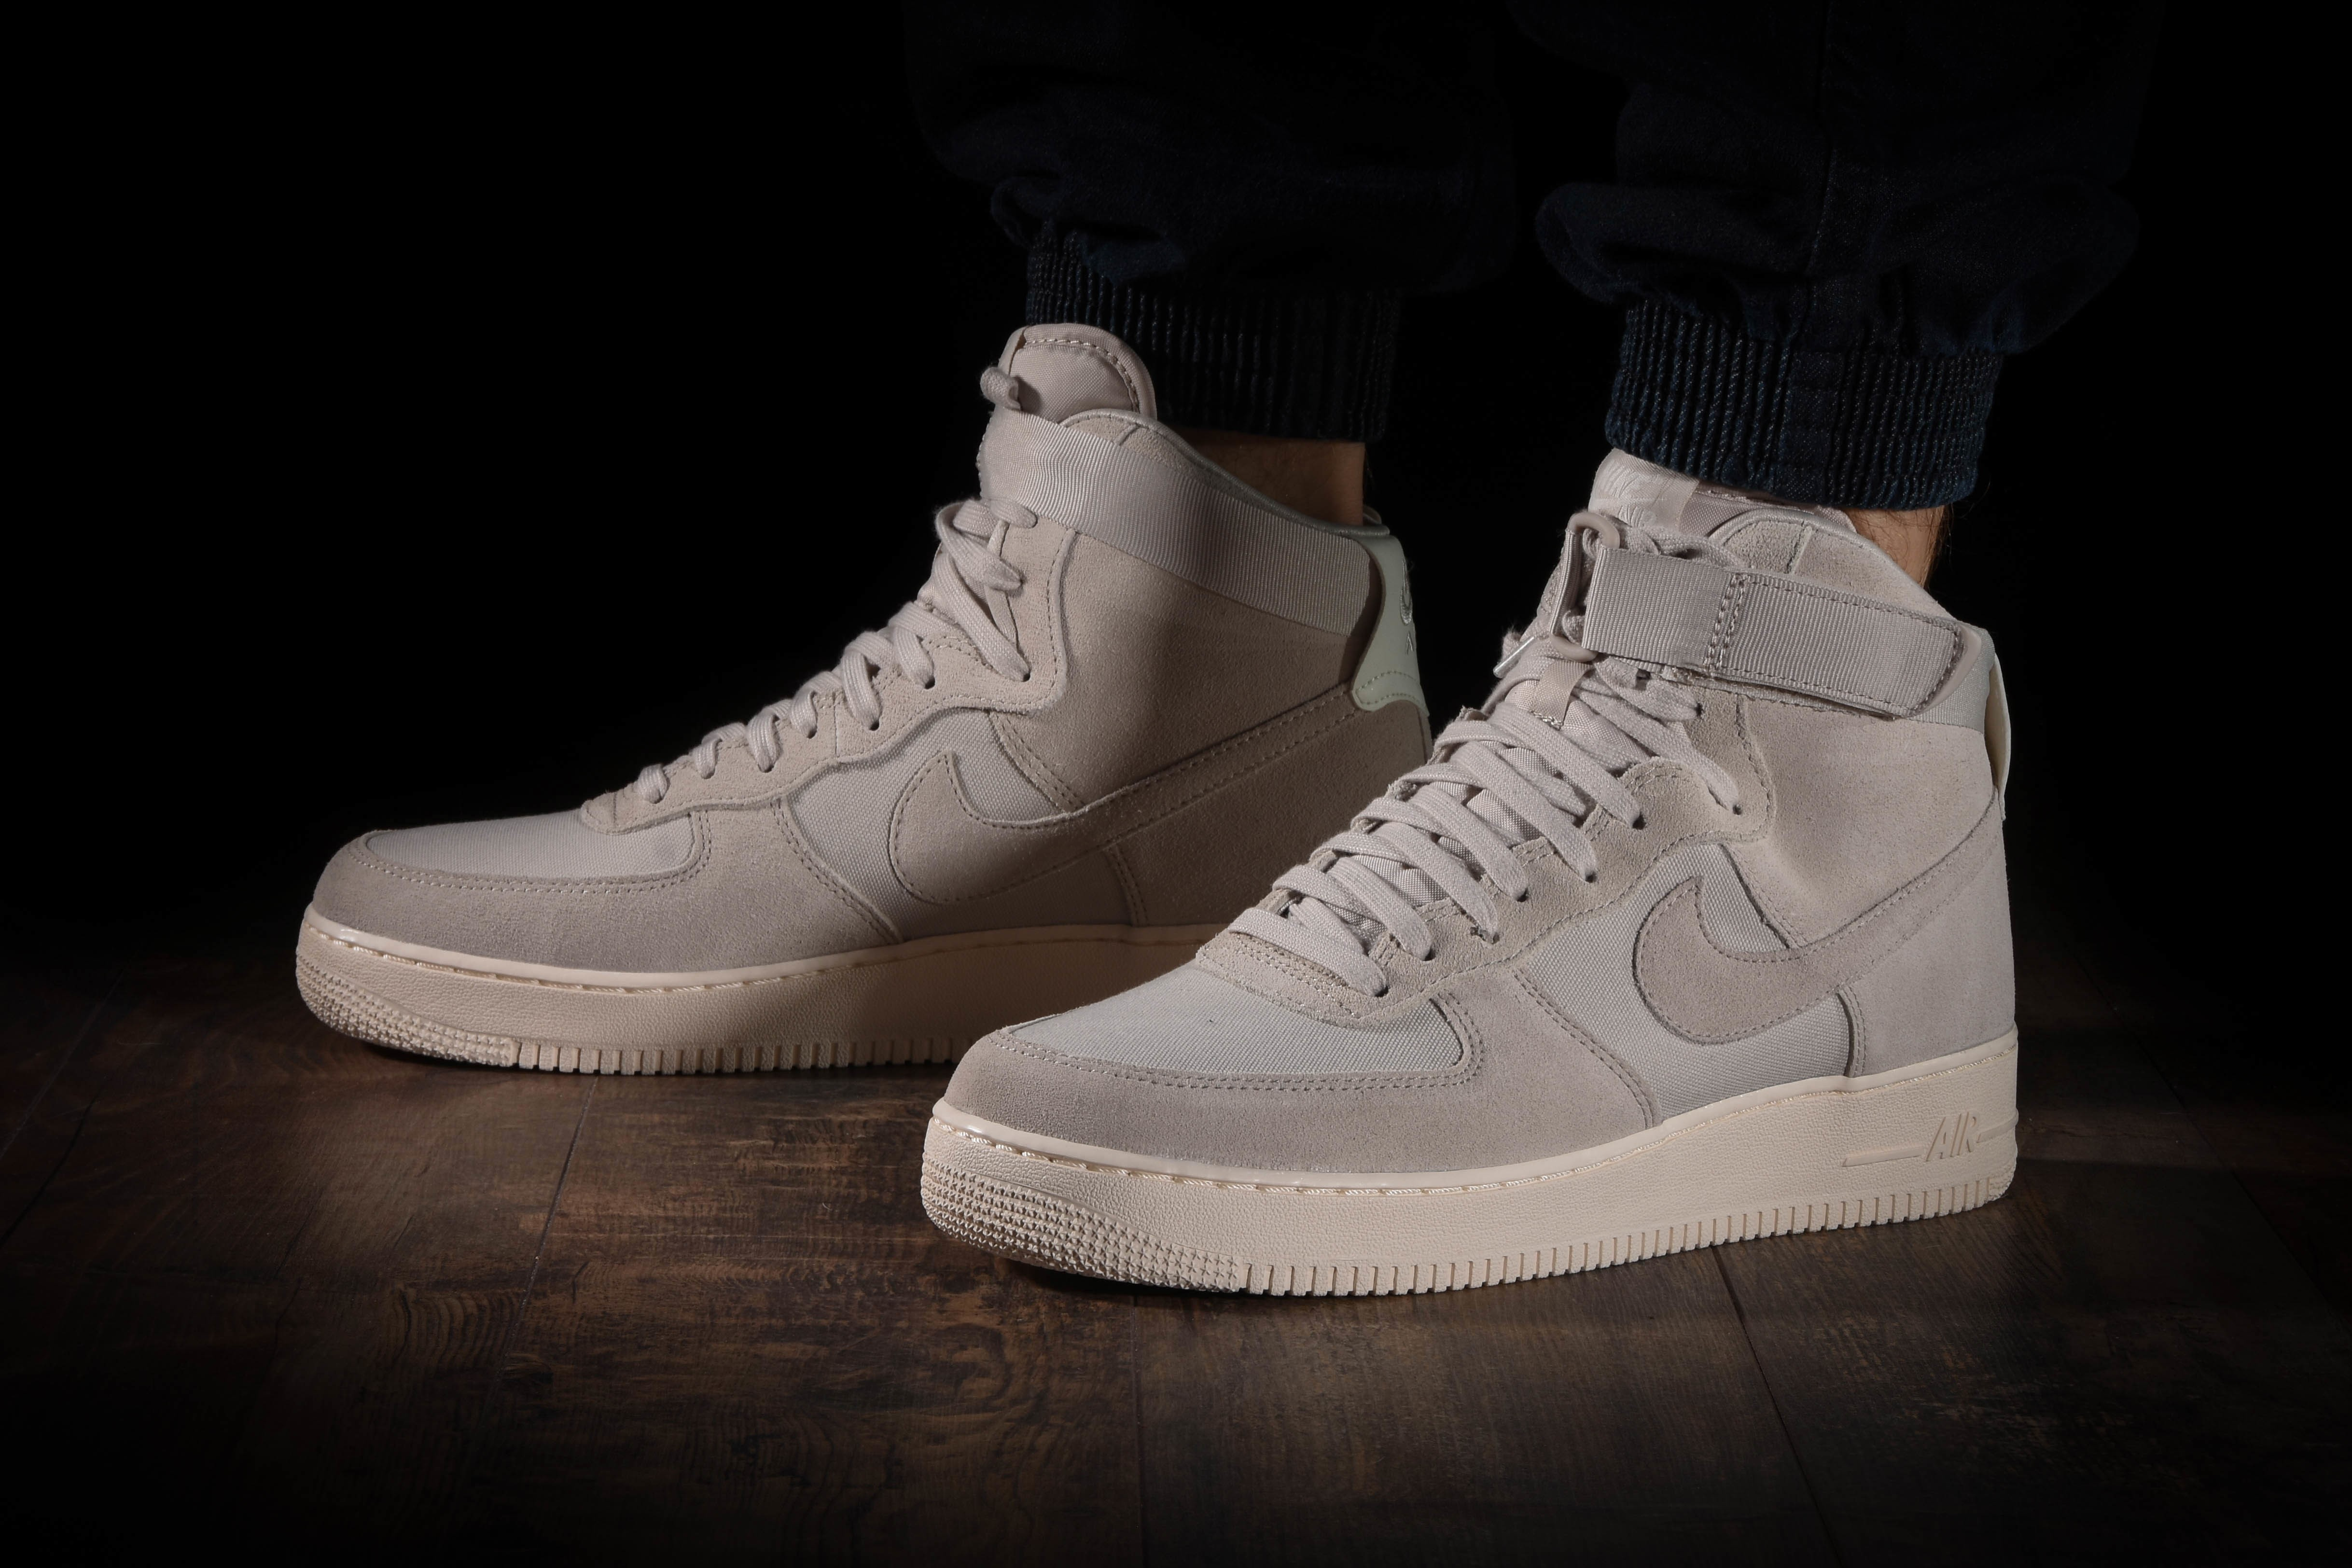 NIKE AIR FORCE 1 HIGH '07 SUEDE for £90.00 |